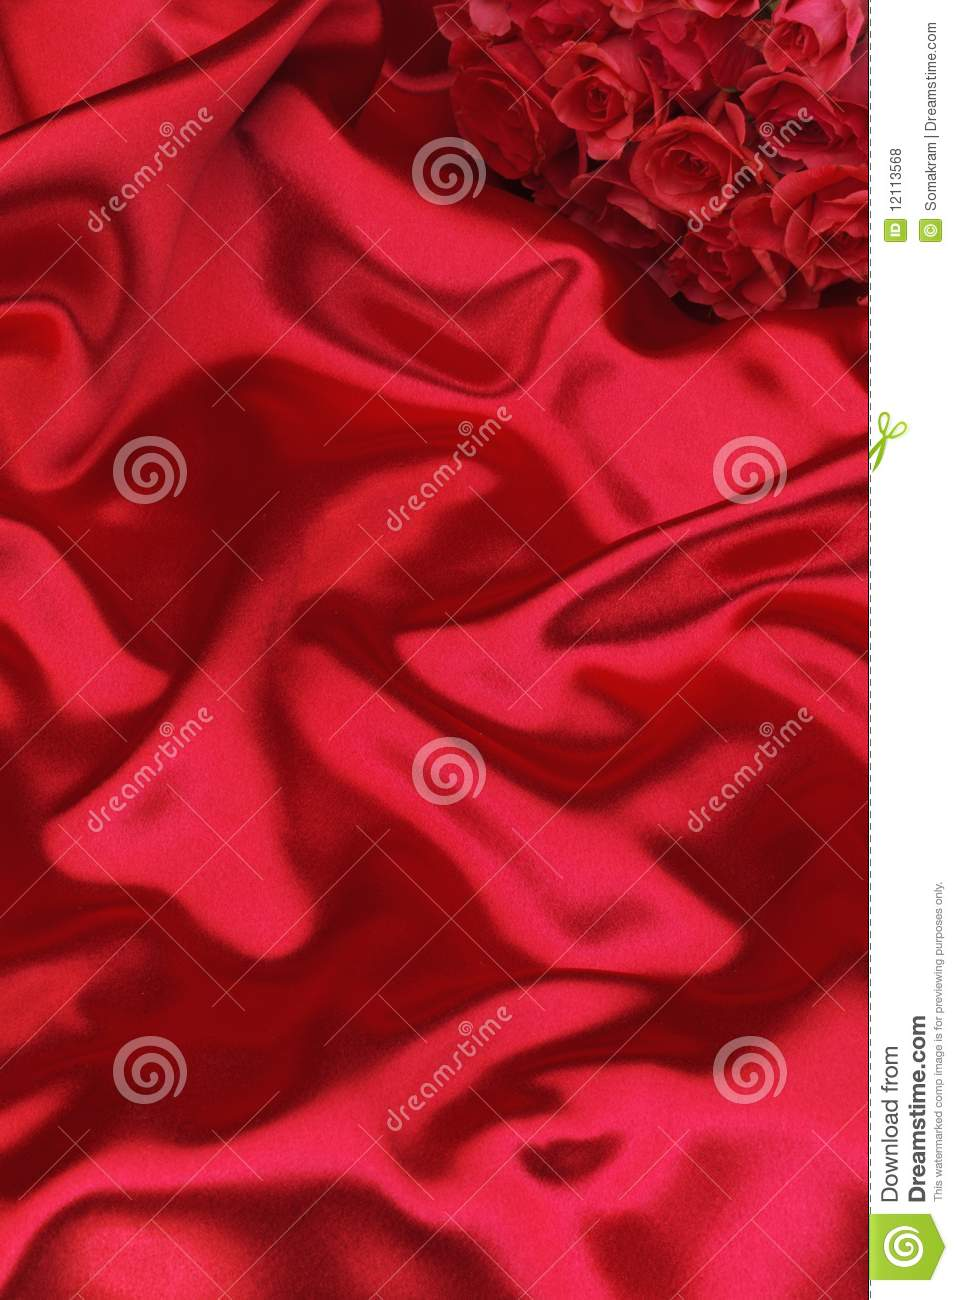 Red silk and roses